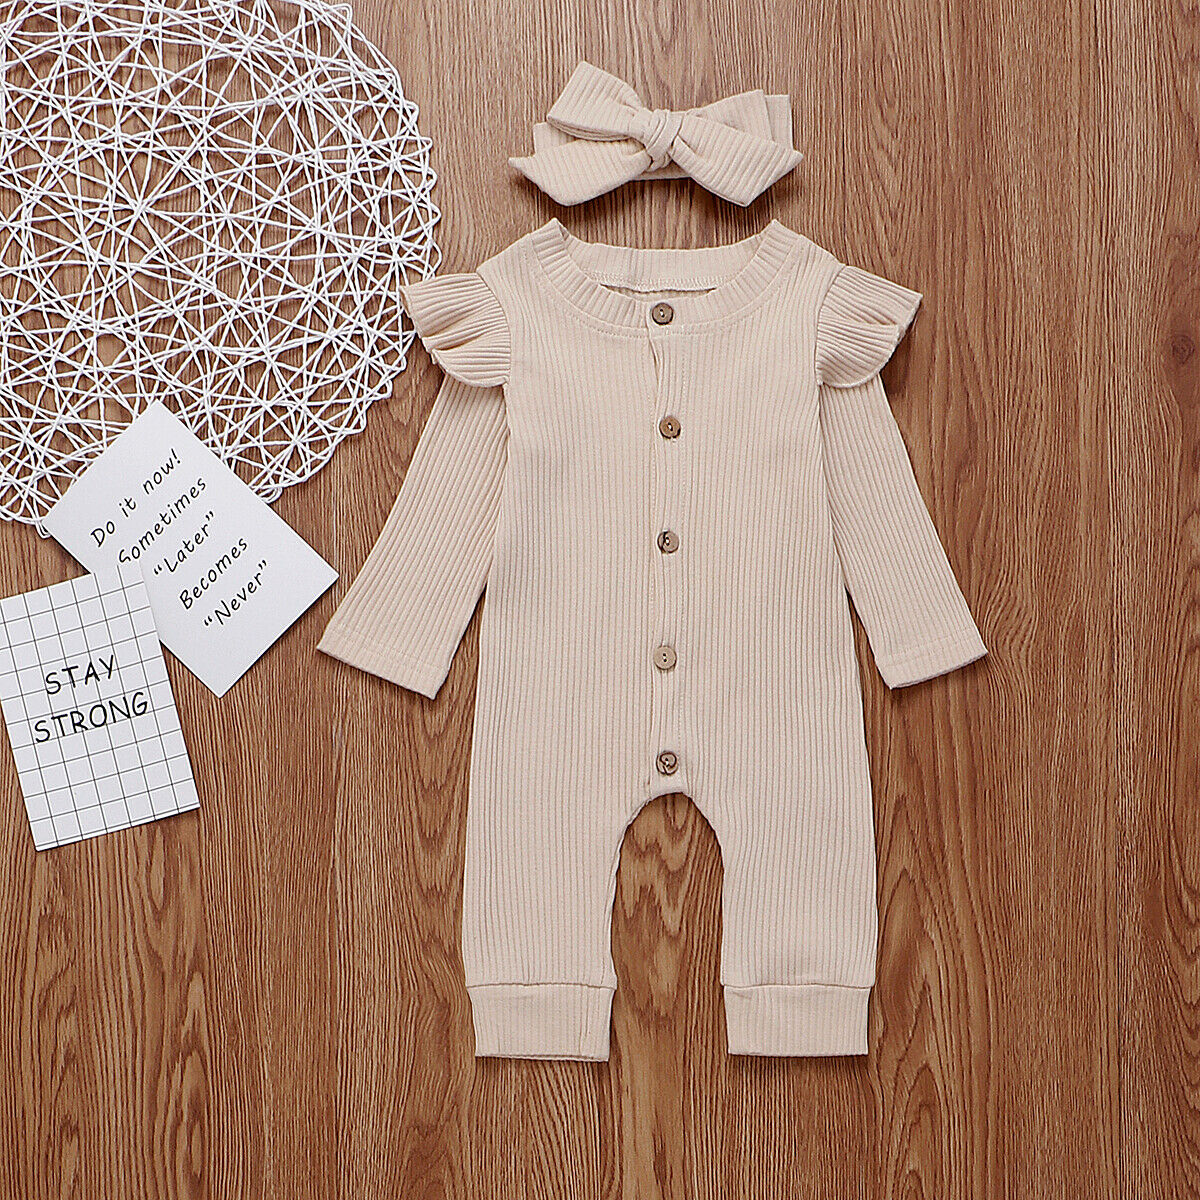 baby girl clothes autumn lattice knitted baby clothes newborn baby girl romper cotton baby cardigan sweater romper jumpsuit Baby Spring Autumn Clothing Newborn Baby Girl Boy Ribbed Clothes Knitted Cotton Romper Jumpsuit Solid 2PCS Outfits